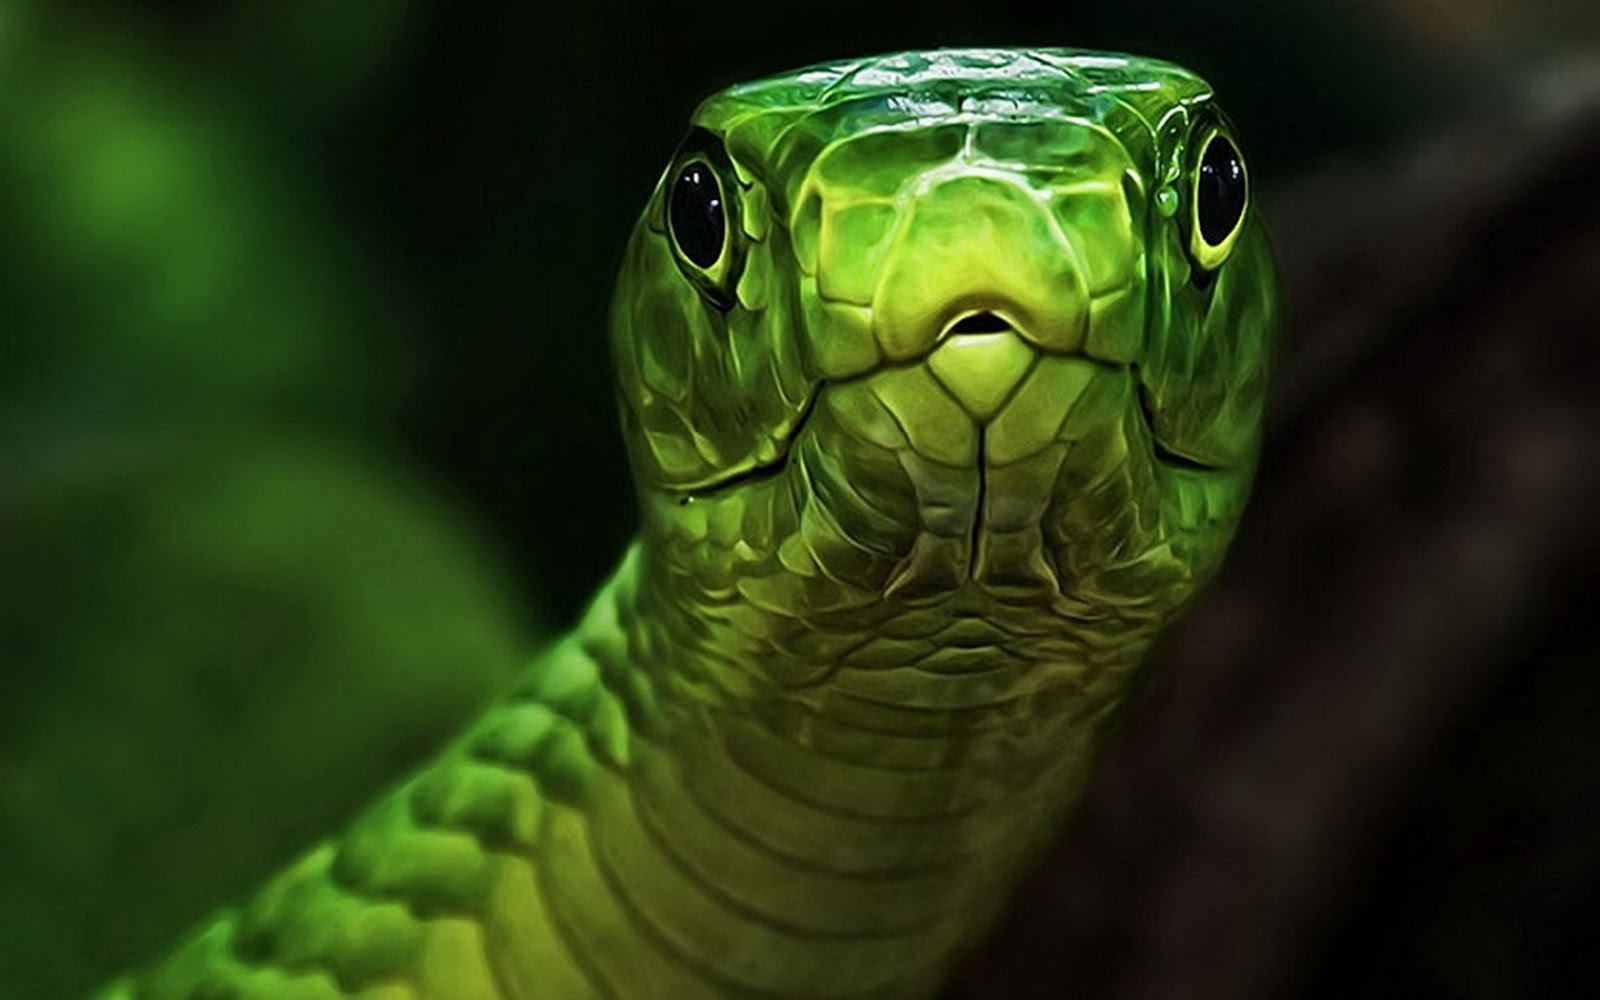 the snake wallpapers - photo #29